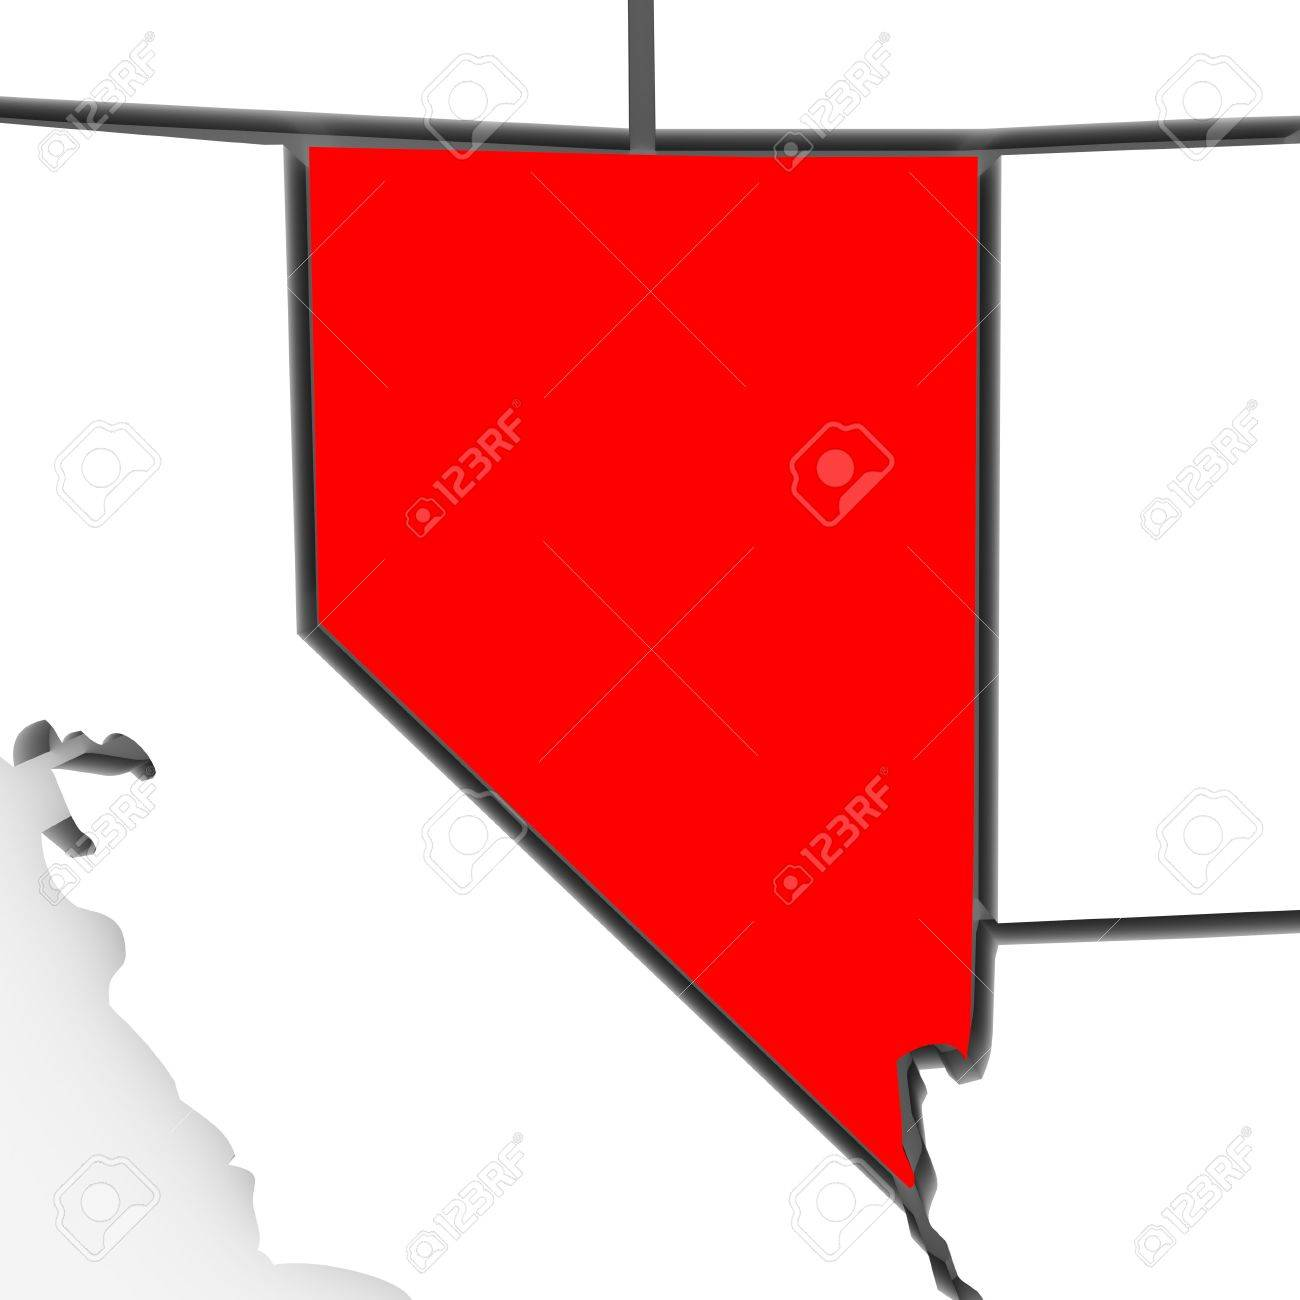 A 3d rendered map of the state of Nevada Stock Photo - 6560332